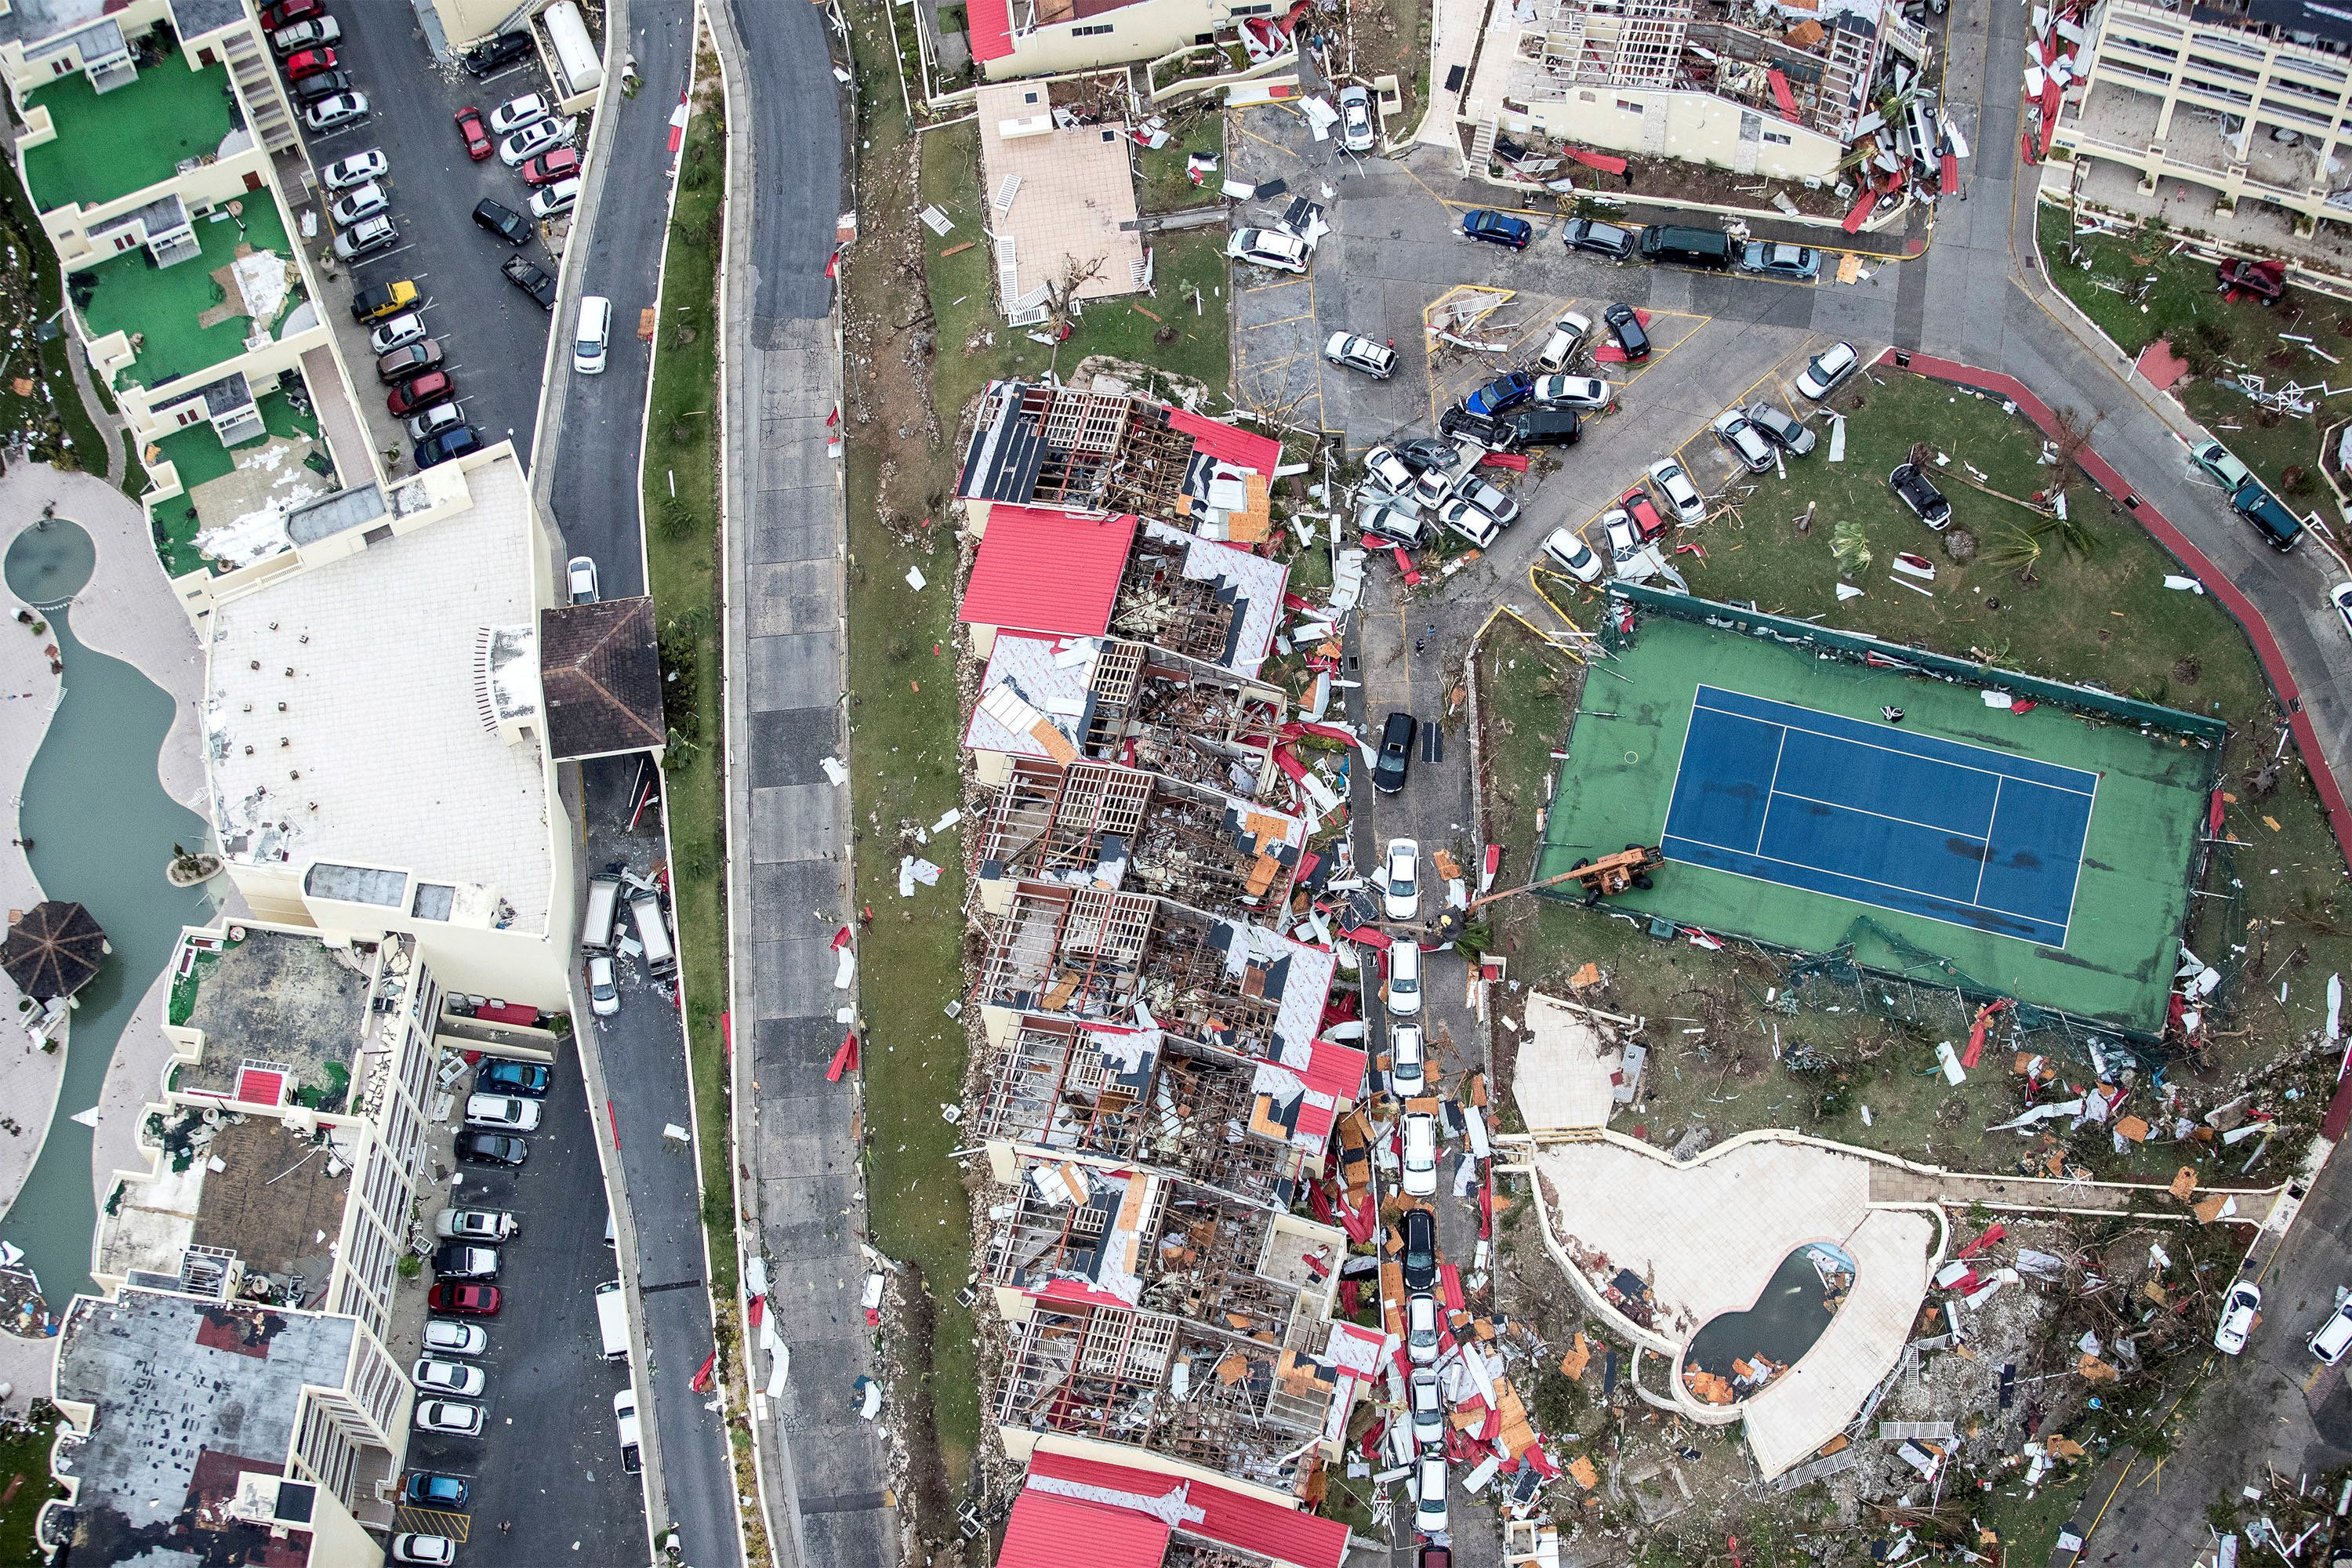 View of the aftermath of Hurricane Irma on Sint Maarten Dutch part of Saint Martin island in the Caribbean September 6, 2017. Picture taken September 6, 2017. Netherlands Ministry of Defence/Handout via REUTERS ATTENTION EDITORS - THIS IMAGE HAS BEEN SUPPLIED BY A THIRD PARTY. MANDATORY CREDIT. NO RESALES. NO ARCHIVES - RC15D5D60770